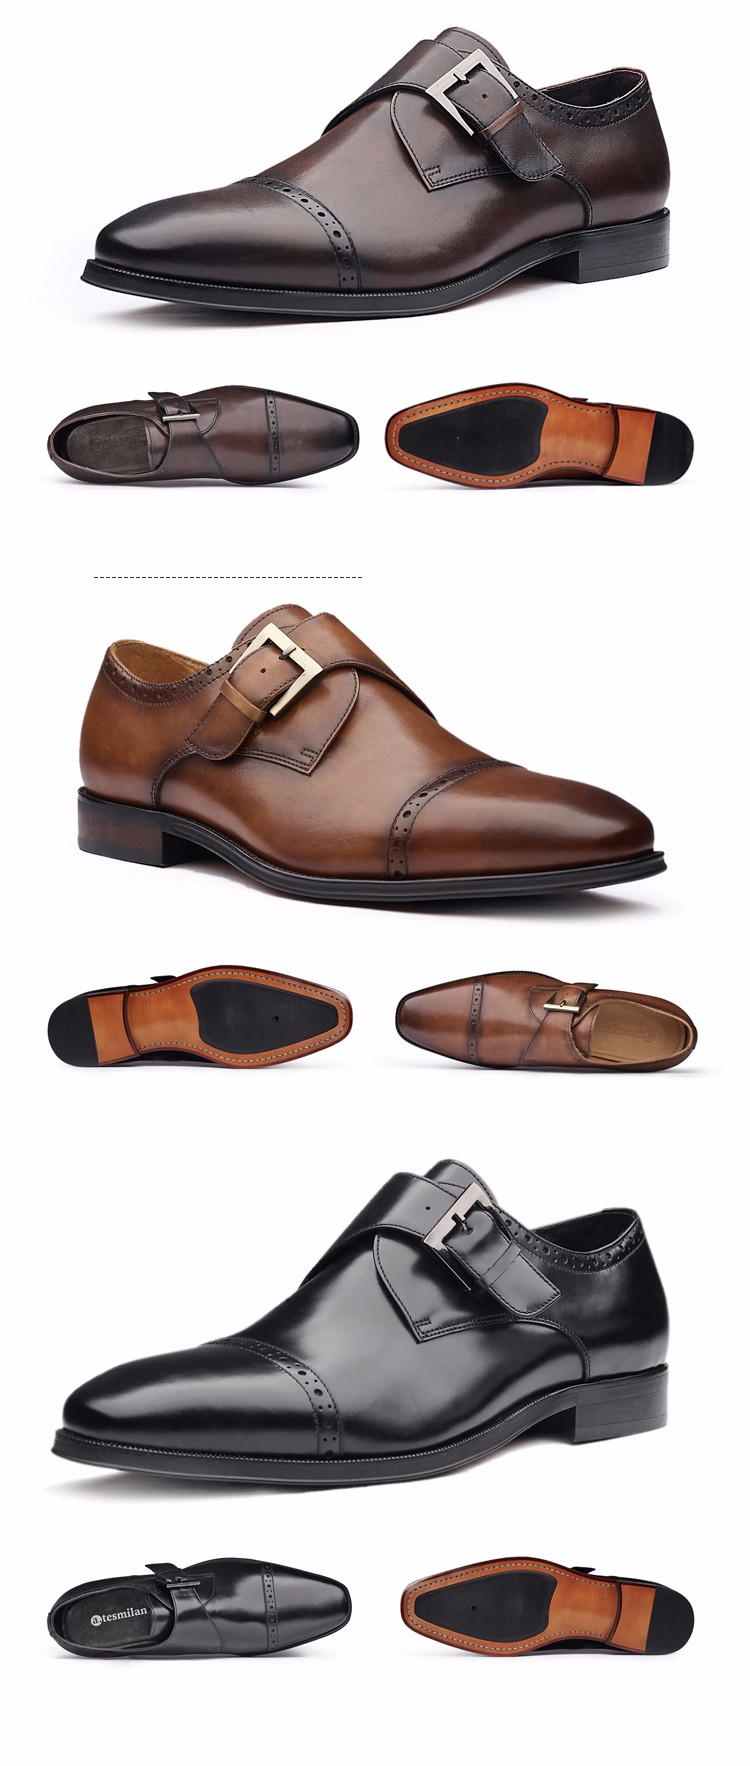 7ac02b75476 China factory fashion wholesale turkey style mens leader formal shoes new  italy design men leather high heel wedding shoes